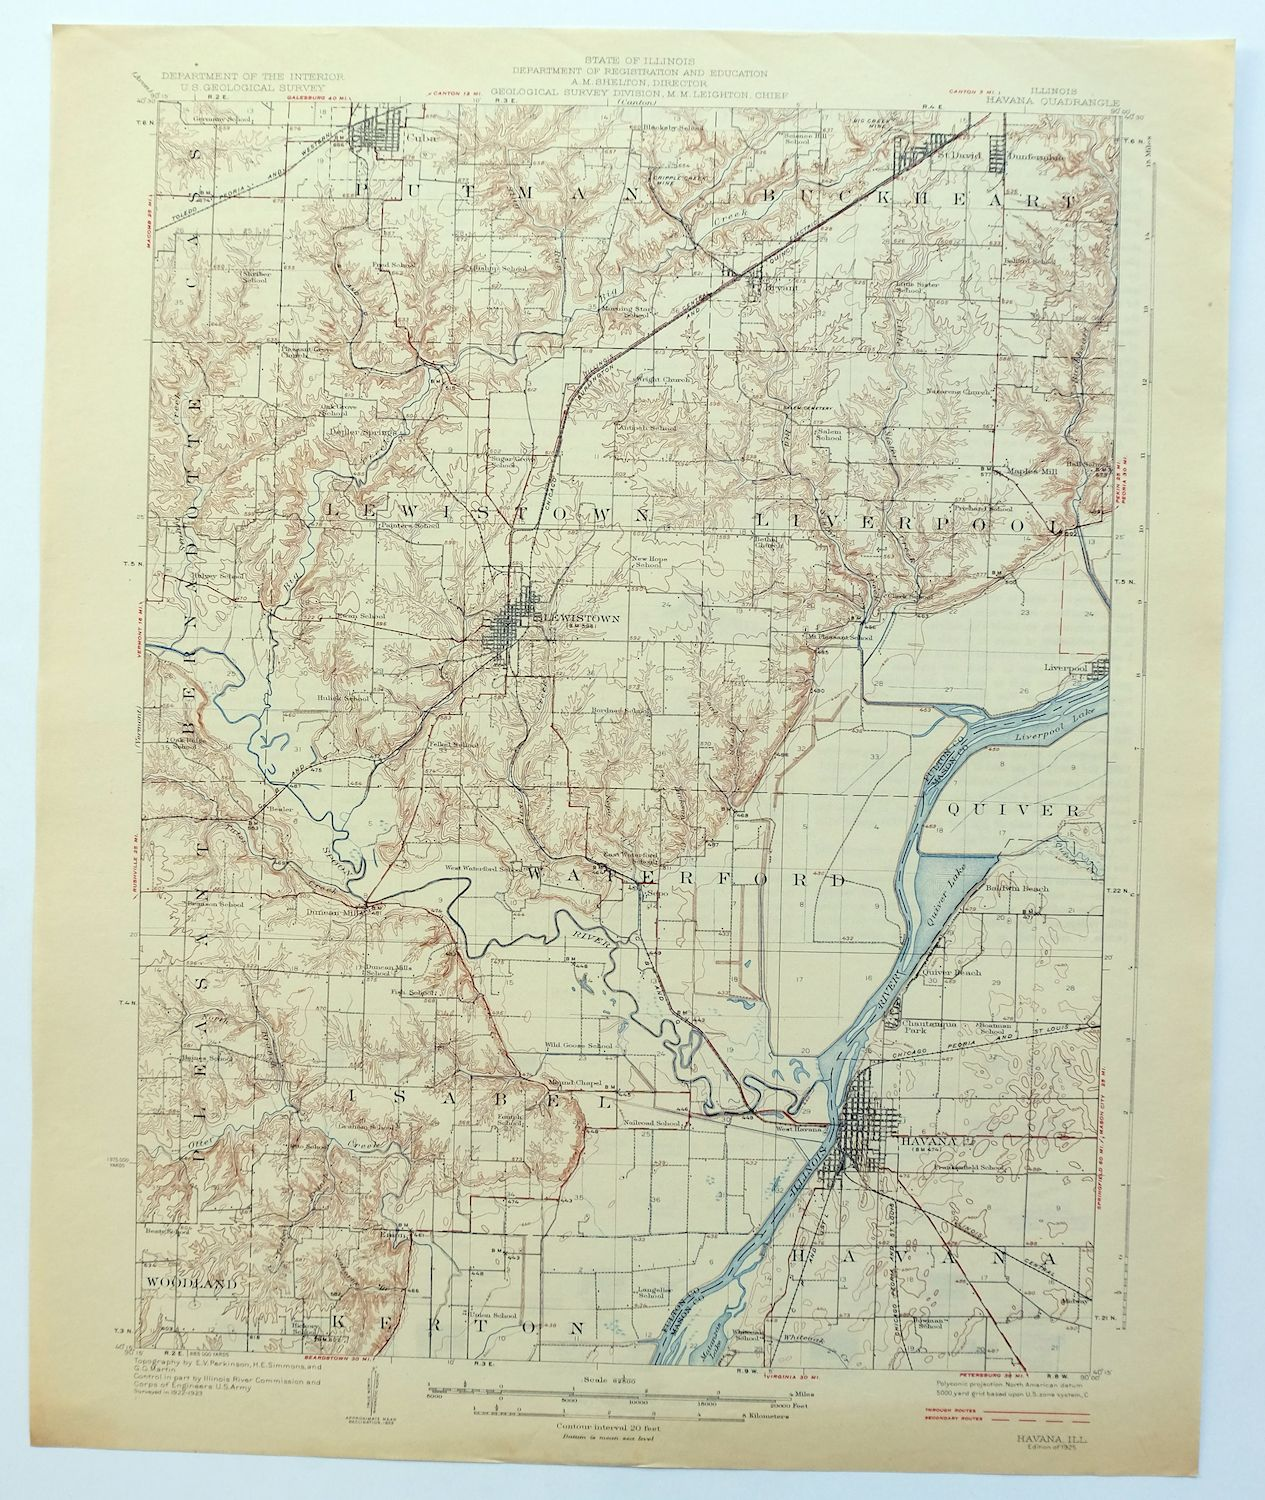 graphic about Printable Map of Havana identify Data regarding Havana Illinois Basic 1925 USGS Topo Map Lewistown Cuba 15-second Topographic